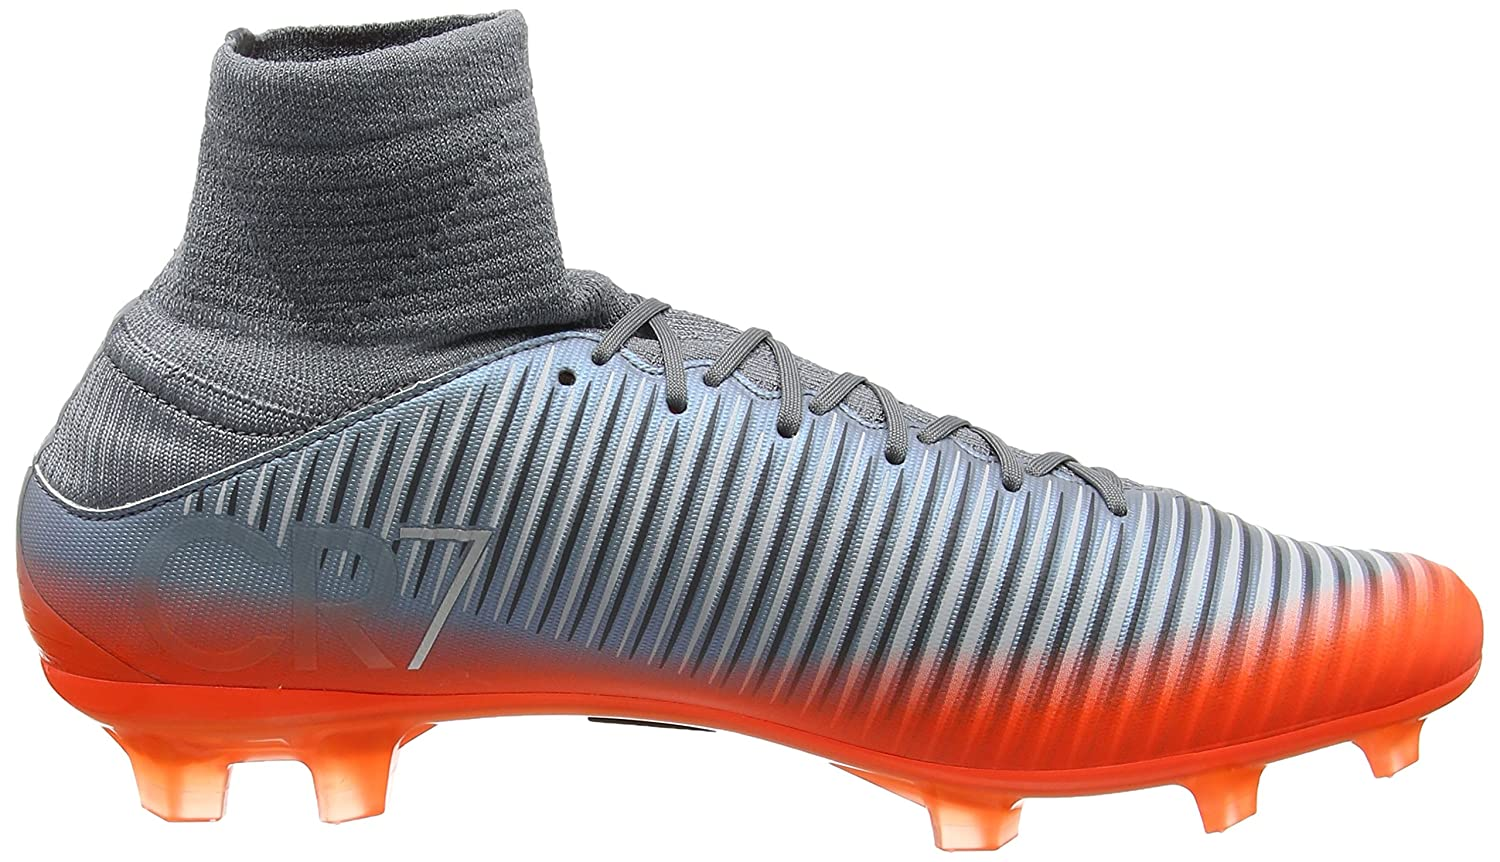 5ca19189d8e Nike Men s Mercurial Veloce III Dynamic Fit CR7 FG Soccer Cleat (Sz. 10)  Cool Grey